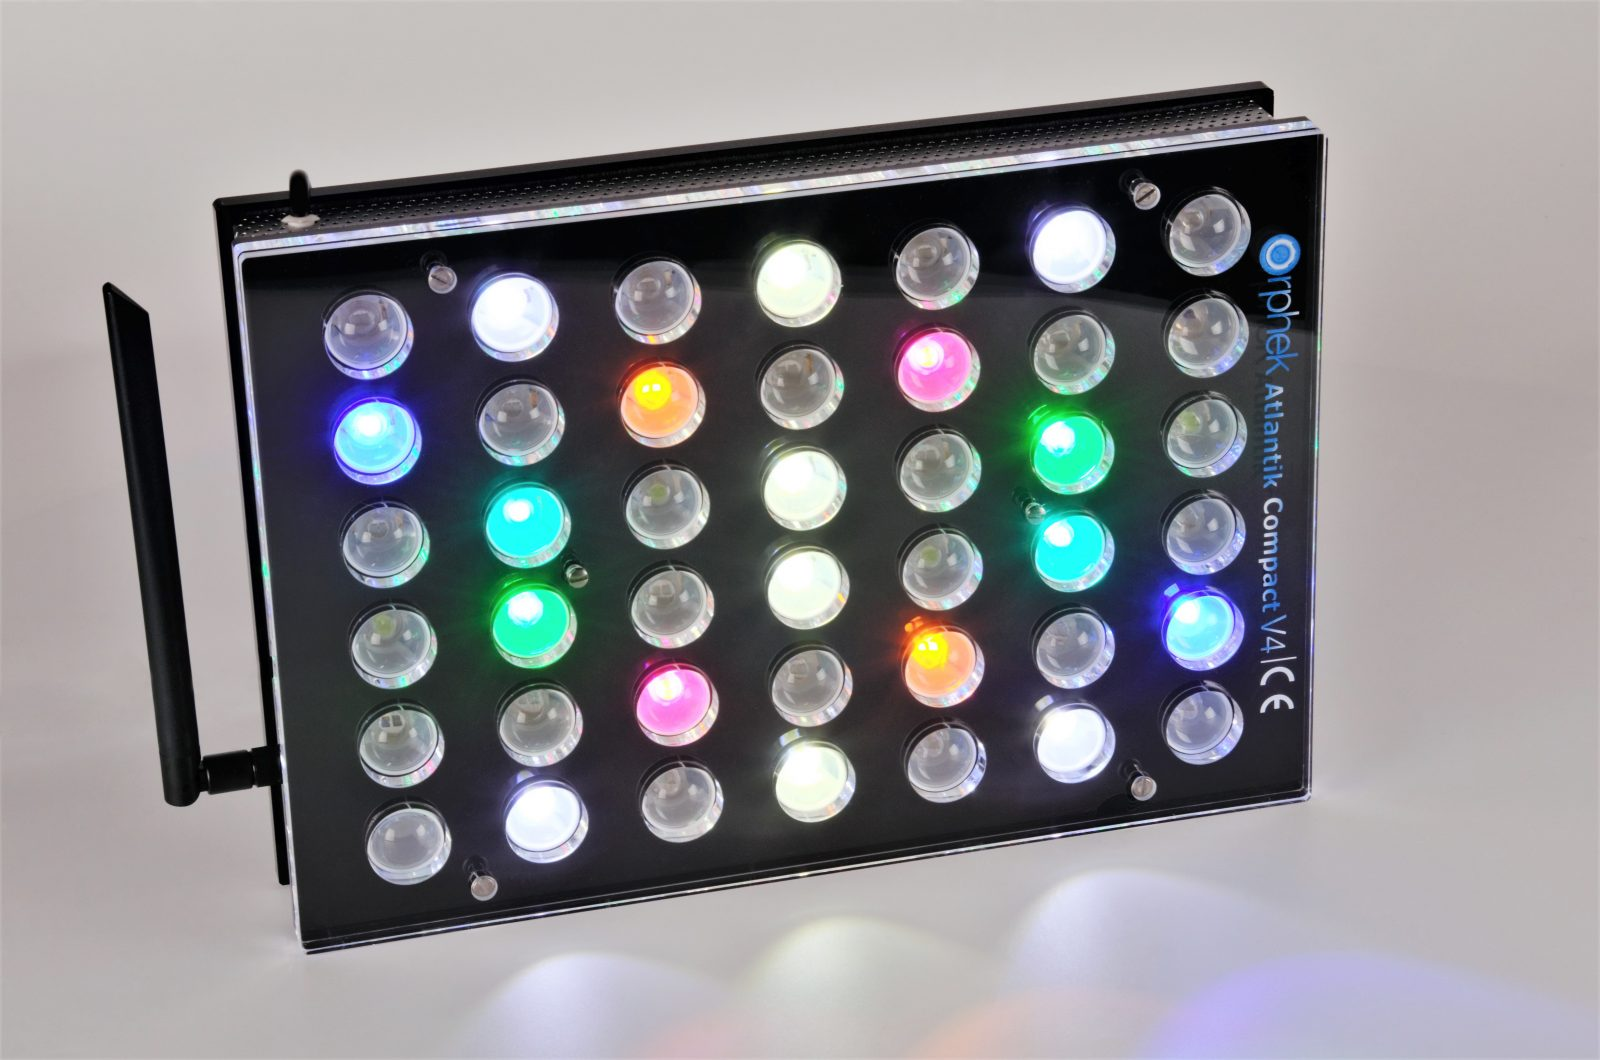 Orphek-Aquarium-Iluminación-LED-Atlantik -Compact-V4-light-on-channel 1 + 4